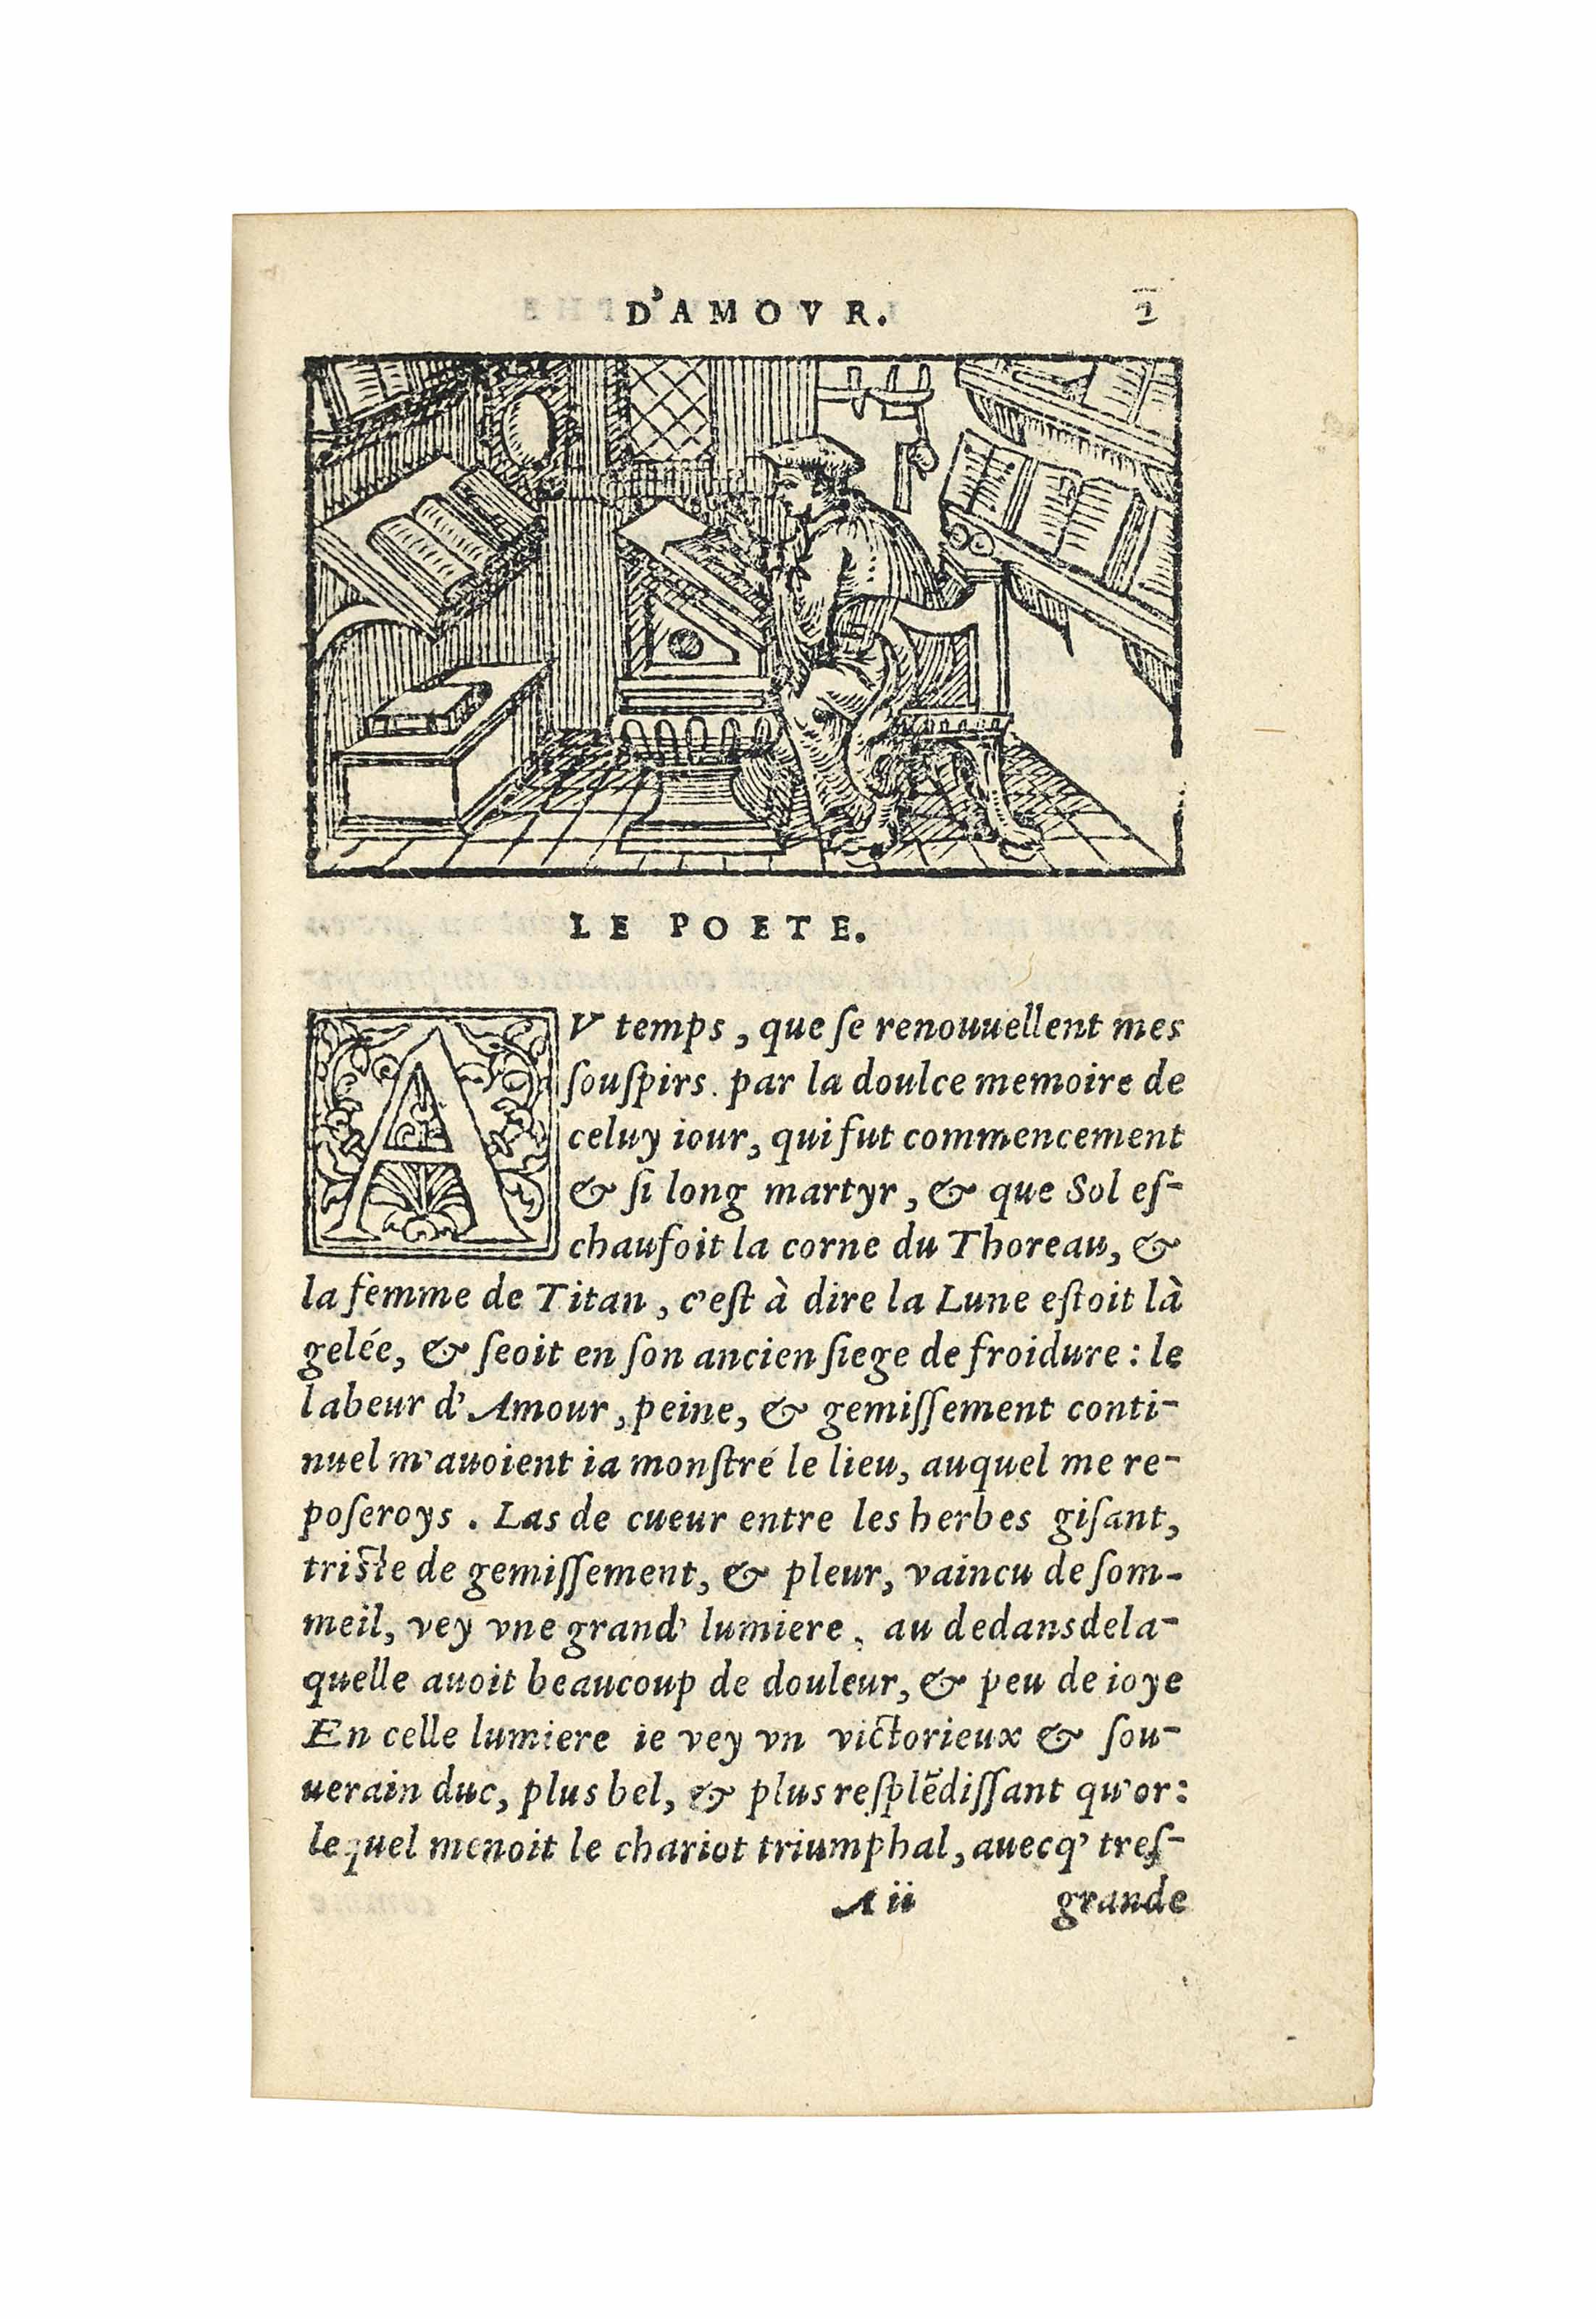 PETRARCA, Francesco (1304-74). Les triumphes Pétrarque. Paris: Groulleau, 1554. 16° (115 x 70mm). Italic type. Woodcut device on verso of title, at beginning of each chapter and at end, 144 woodcuts (30 x 53mm), some repeated. (Small marginal repair to K3.) Red morocco by Trautz-Bauzonnet, gilt supralibros, gilt spine-lettering, turn-ins and edges. Provenance: Edouard Rahir (morocco label) -- another unidentified armorial label -- purchased from L. Giraud-Badin, 1931.